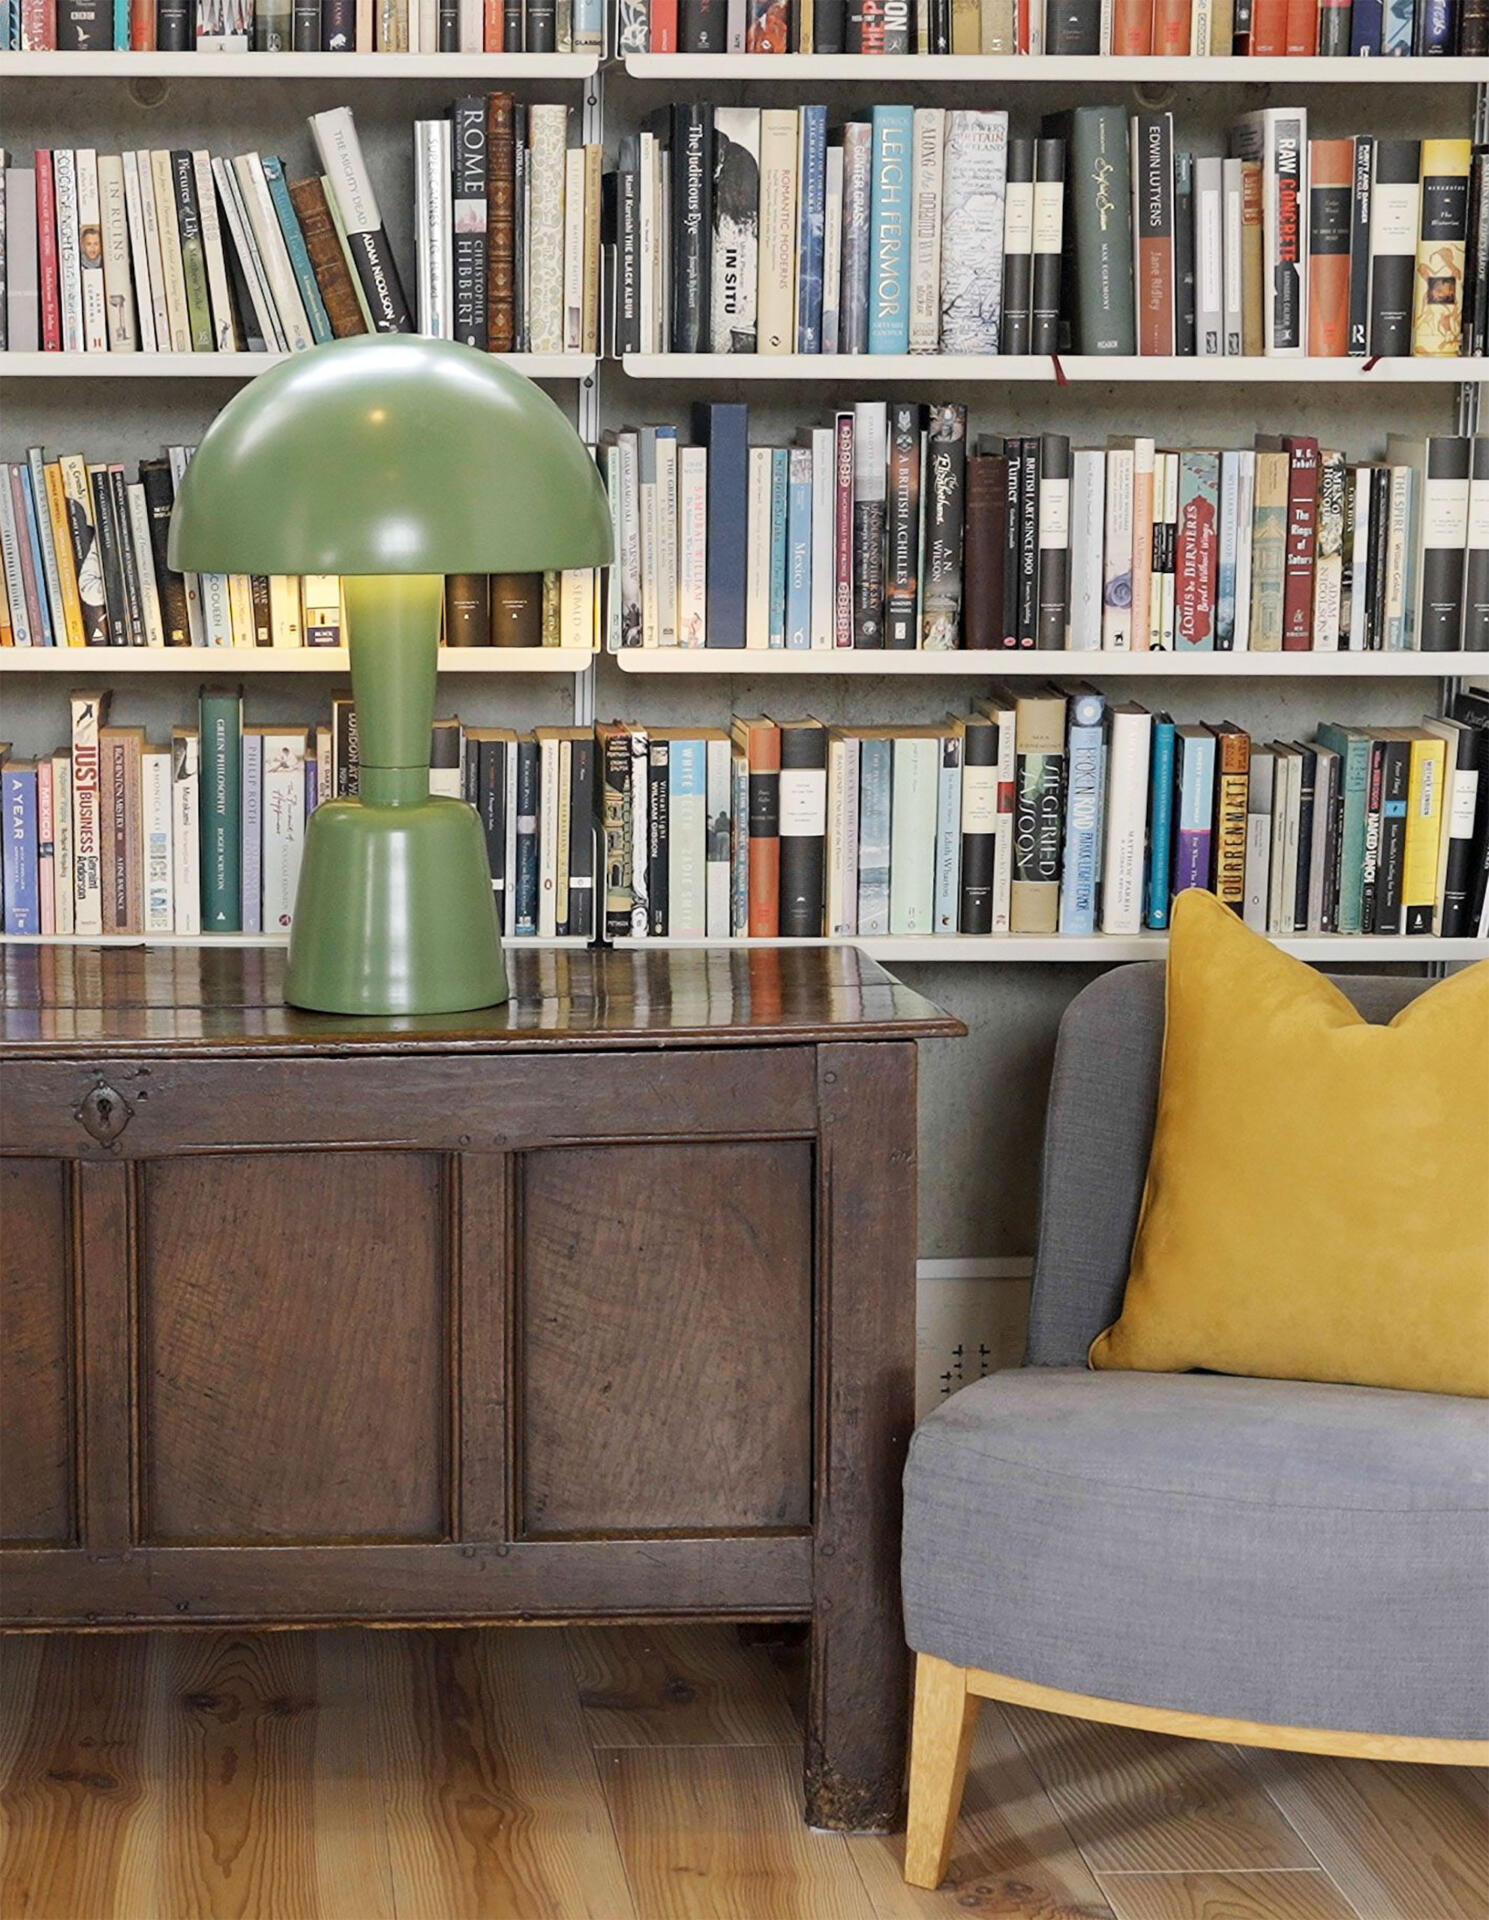 large Powder Coated Cep table lamp by Collier Webb - a mid-century style lamp